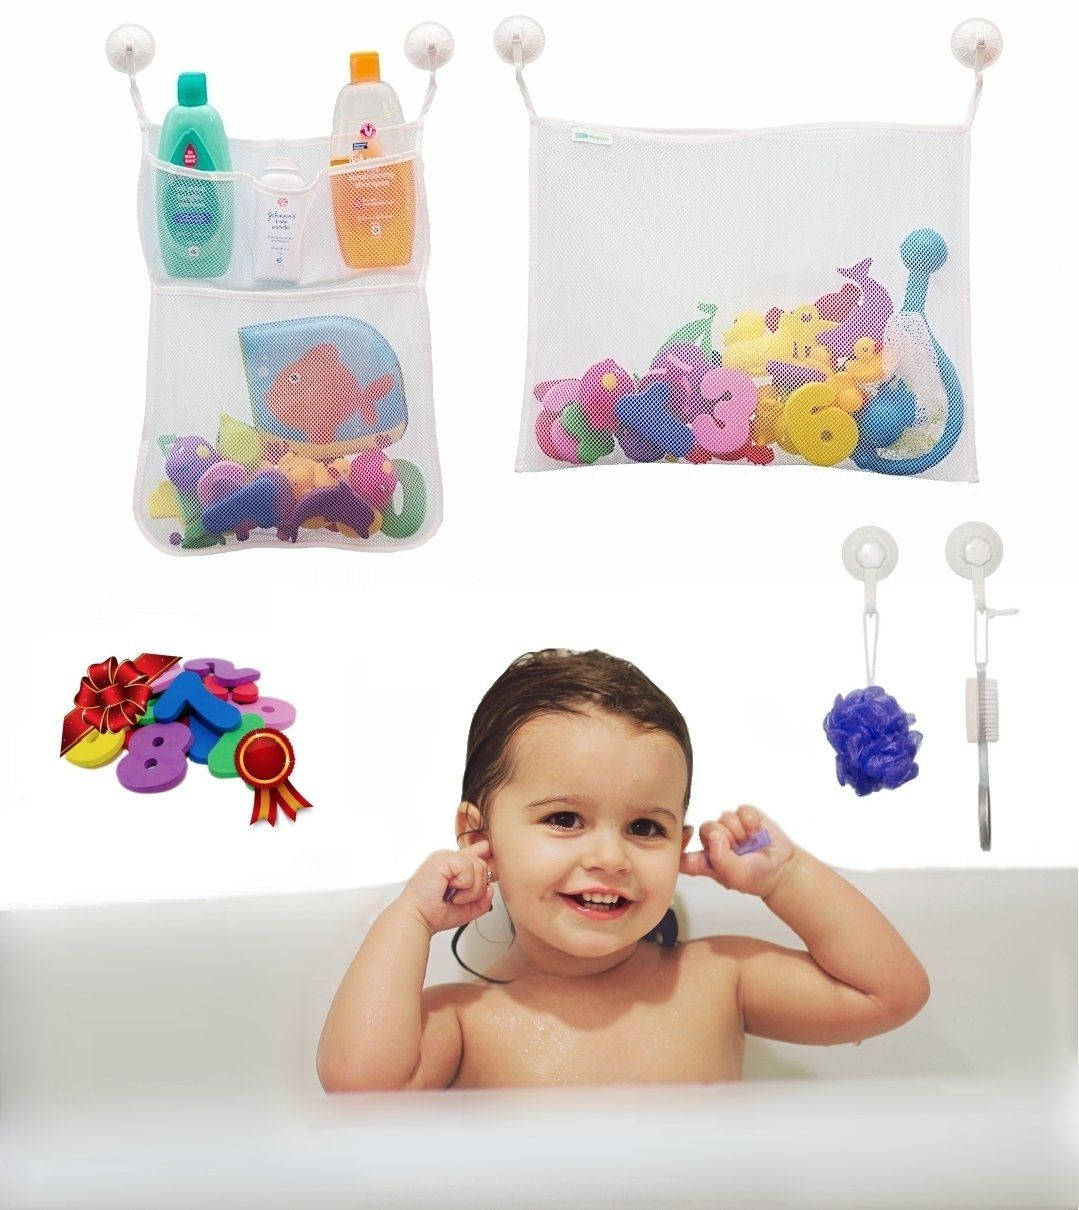 SODAH Club Bath Toy Organizer Set + Educational Numbers & Shapes ...